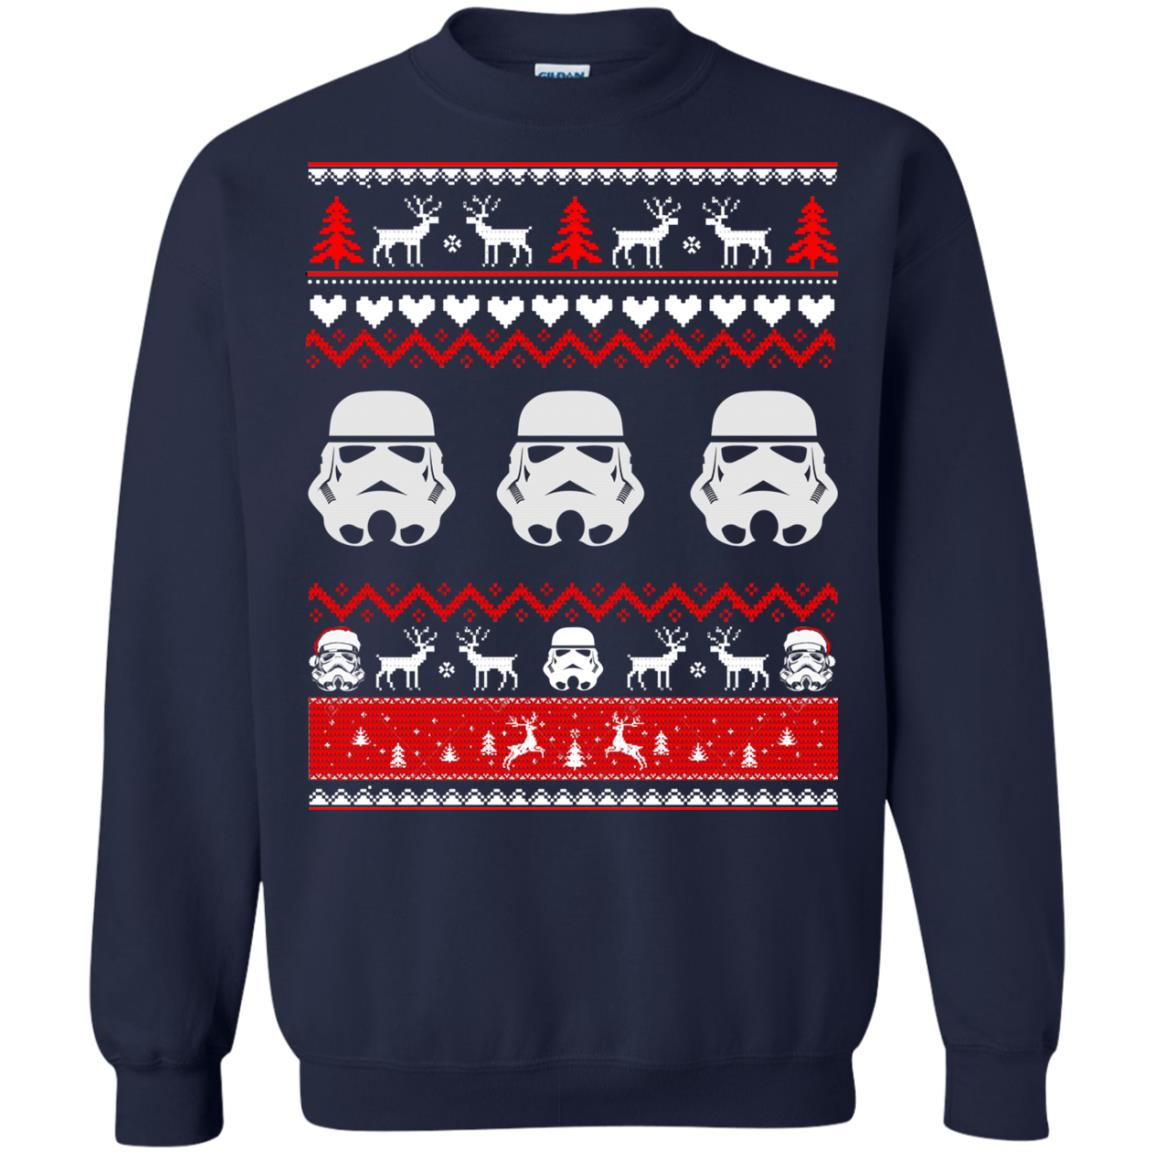 image 1729 - Stormtrooper Star Wars Ugly Christmas Sweatshirt, Shirt